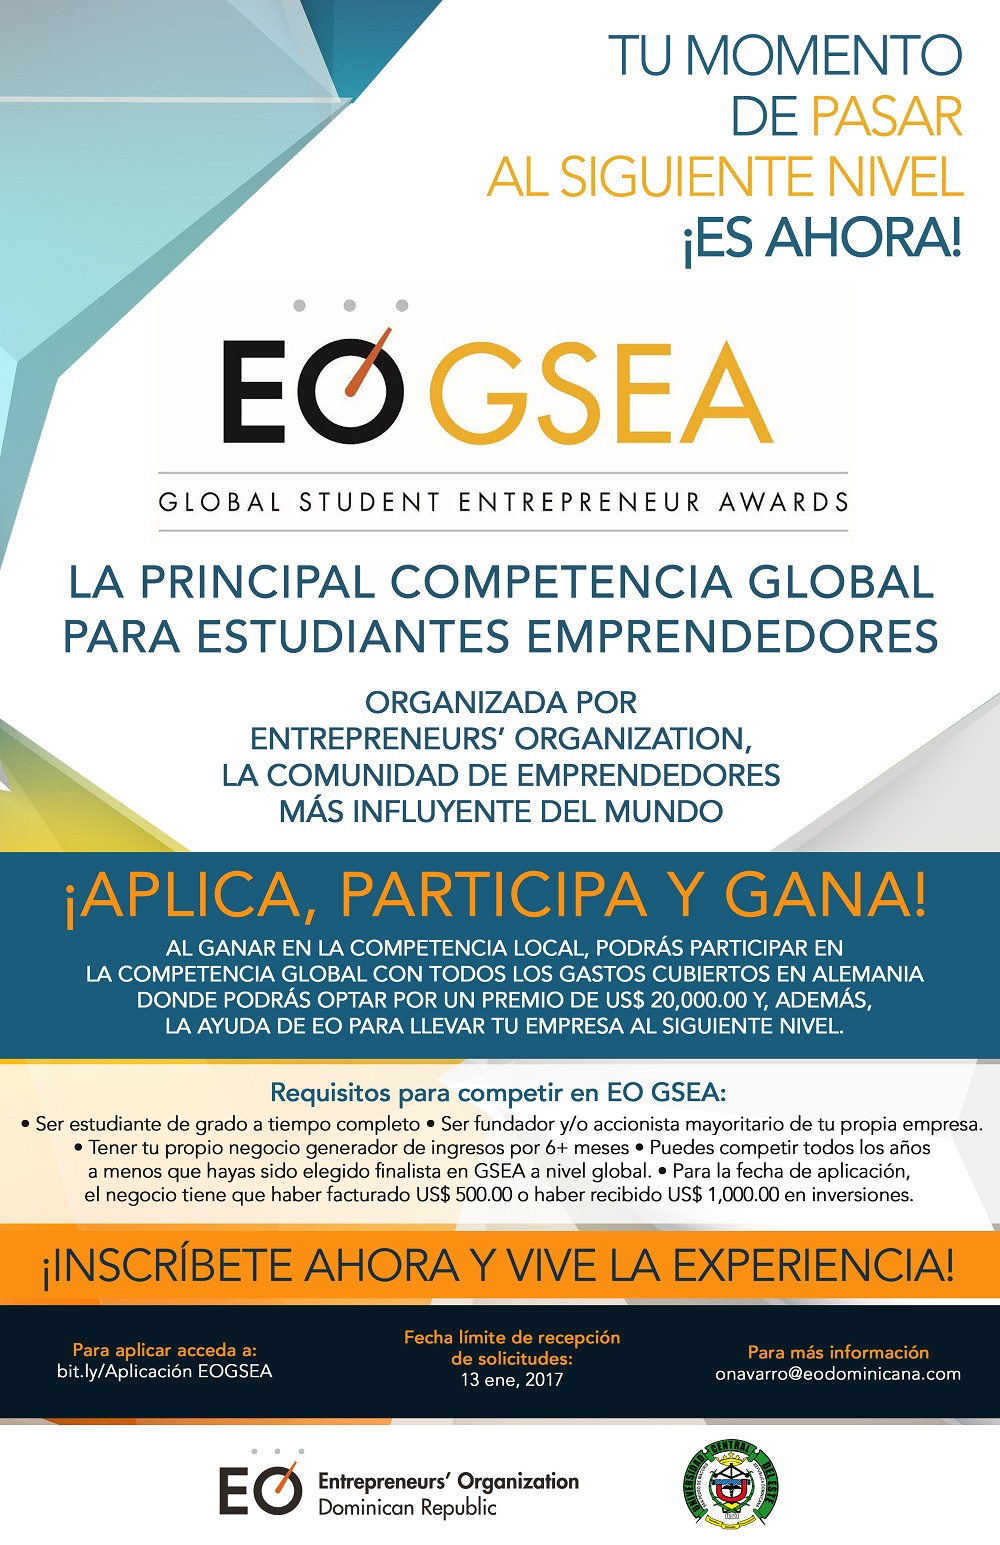 ¡PARTICIPA! En Global Student Entrepreneur Awards (GSEA).